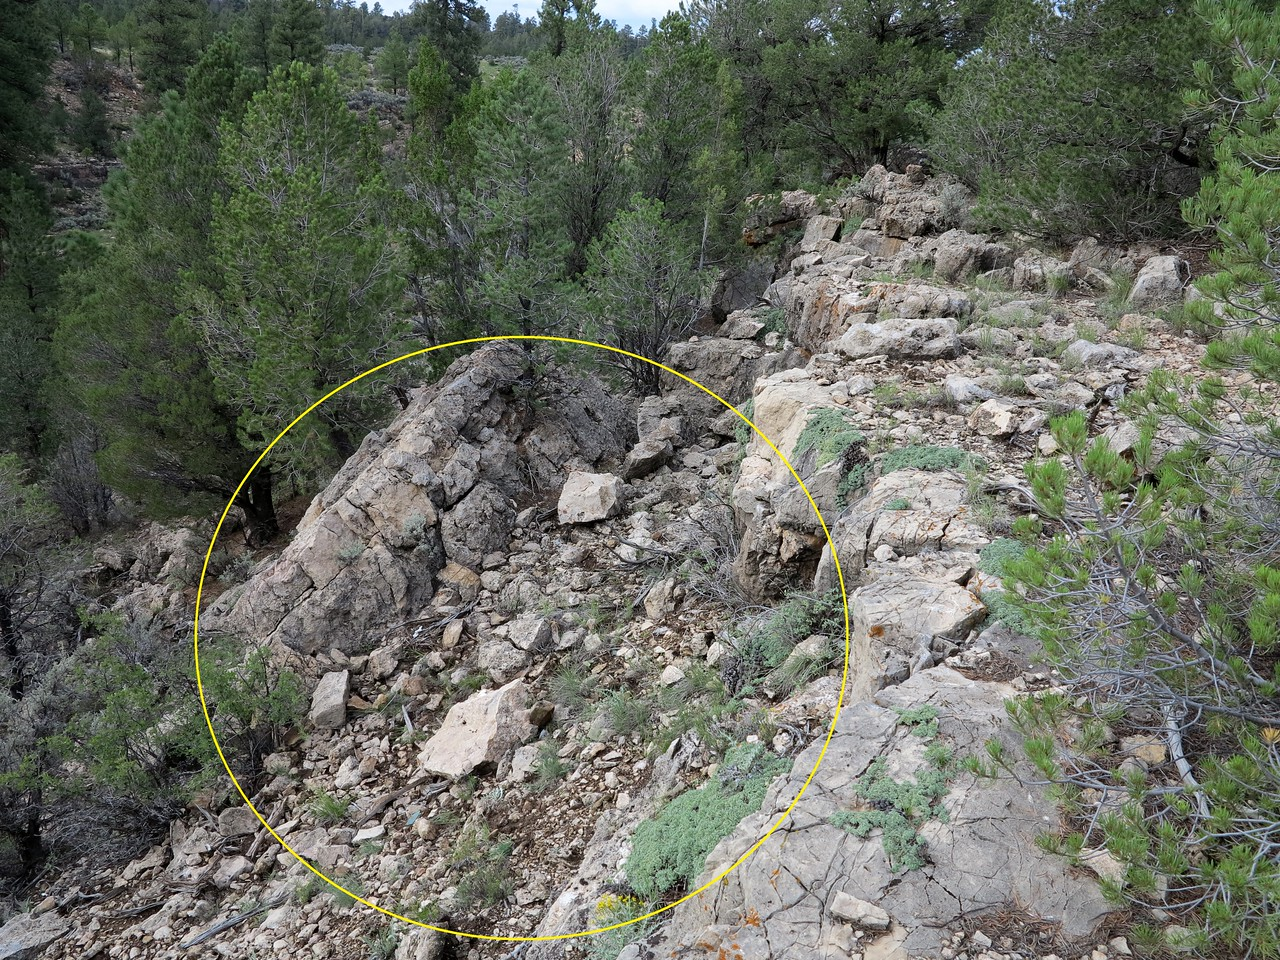 The yellow circle depicts the location where a majority of wreckage debris was located. A few items found within the debris helped provide identification to the crash site.